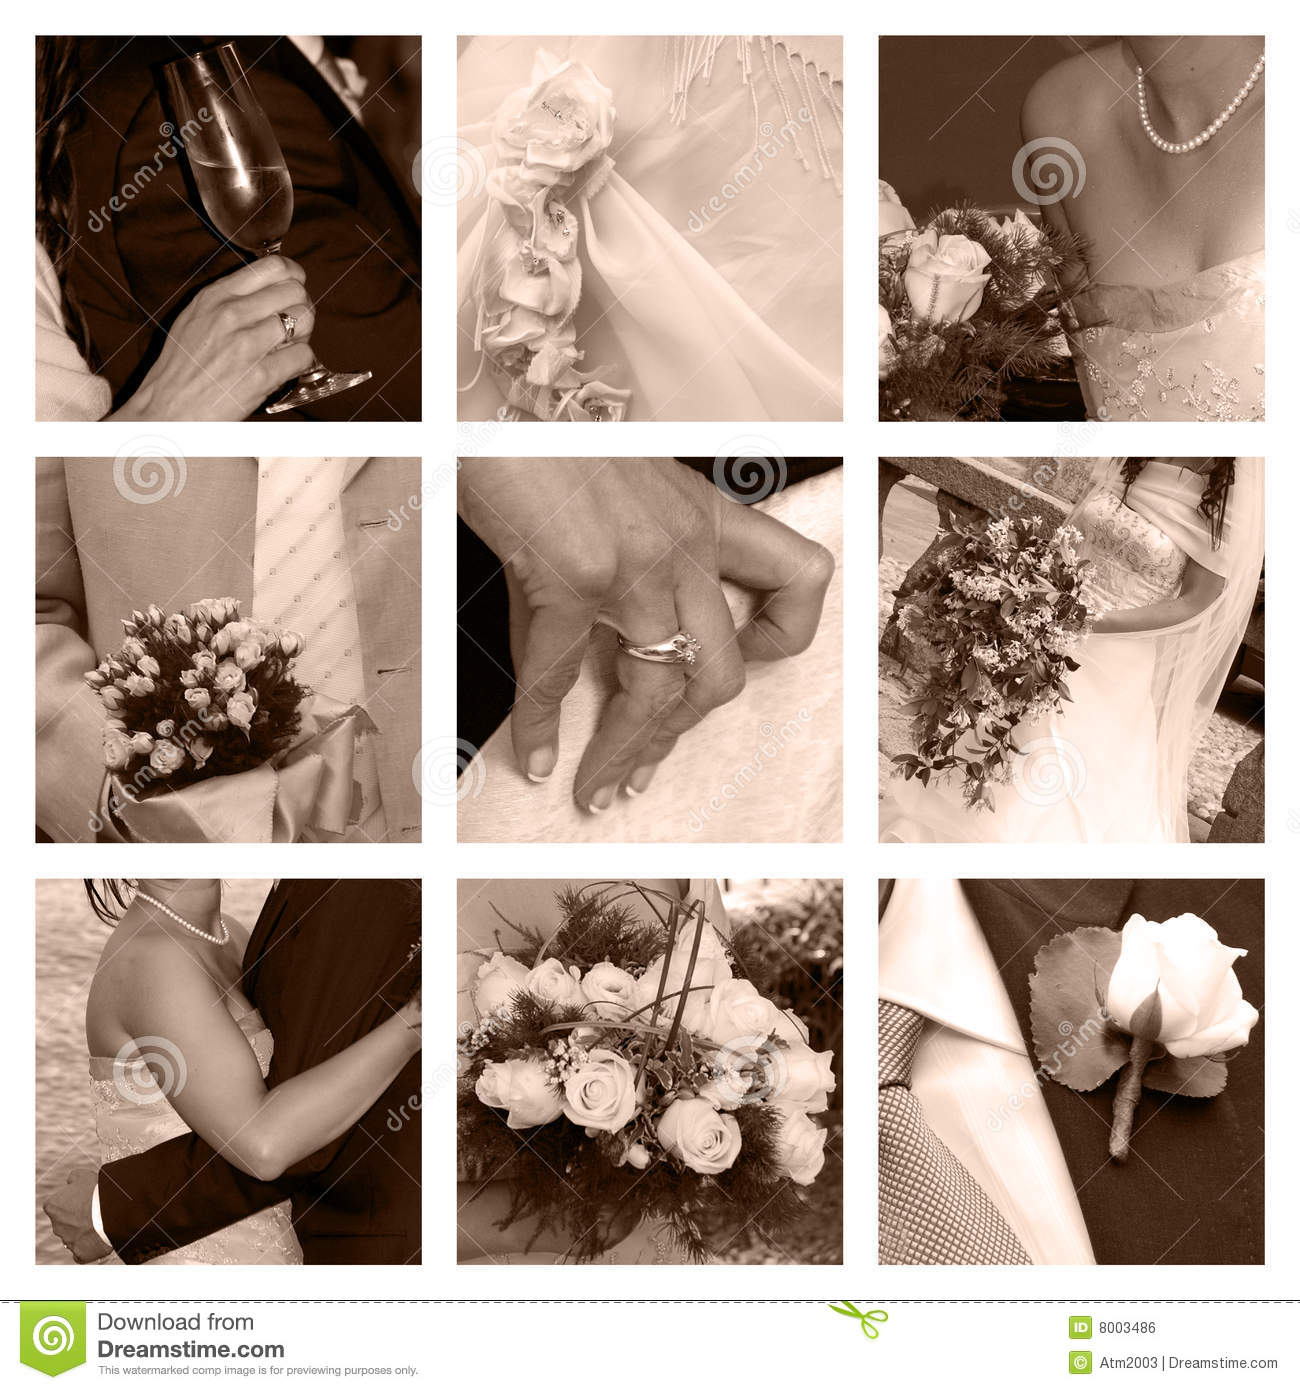 Wedding Collage Stock Photos, Images, & Pictures - 2,398 Images